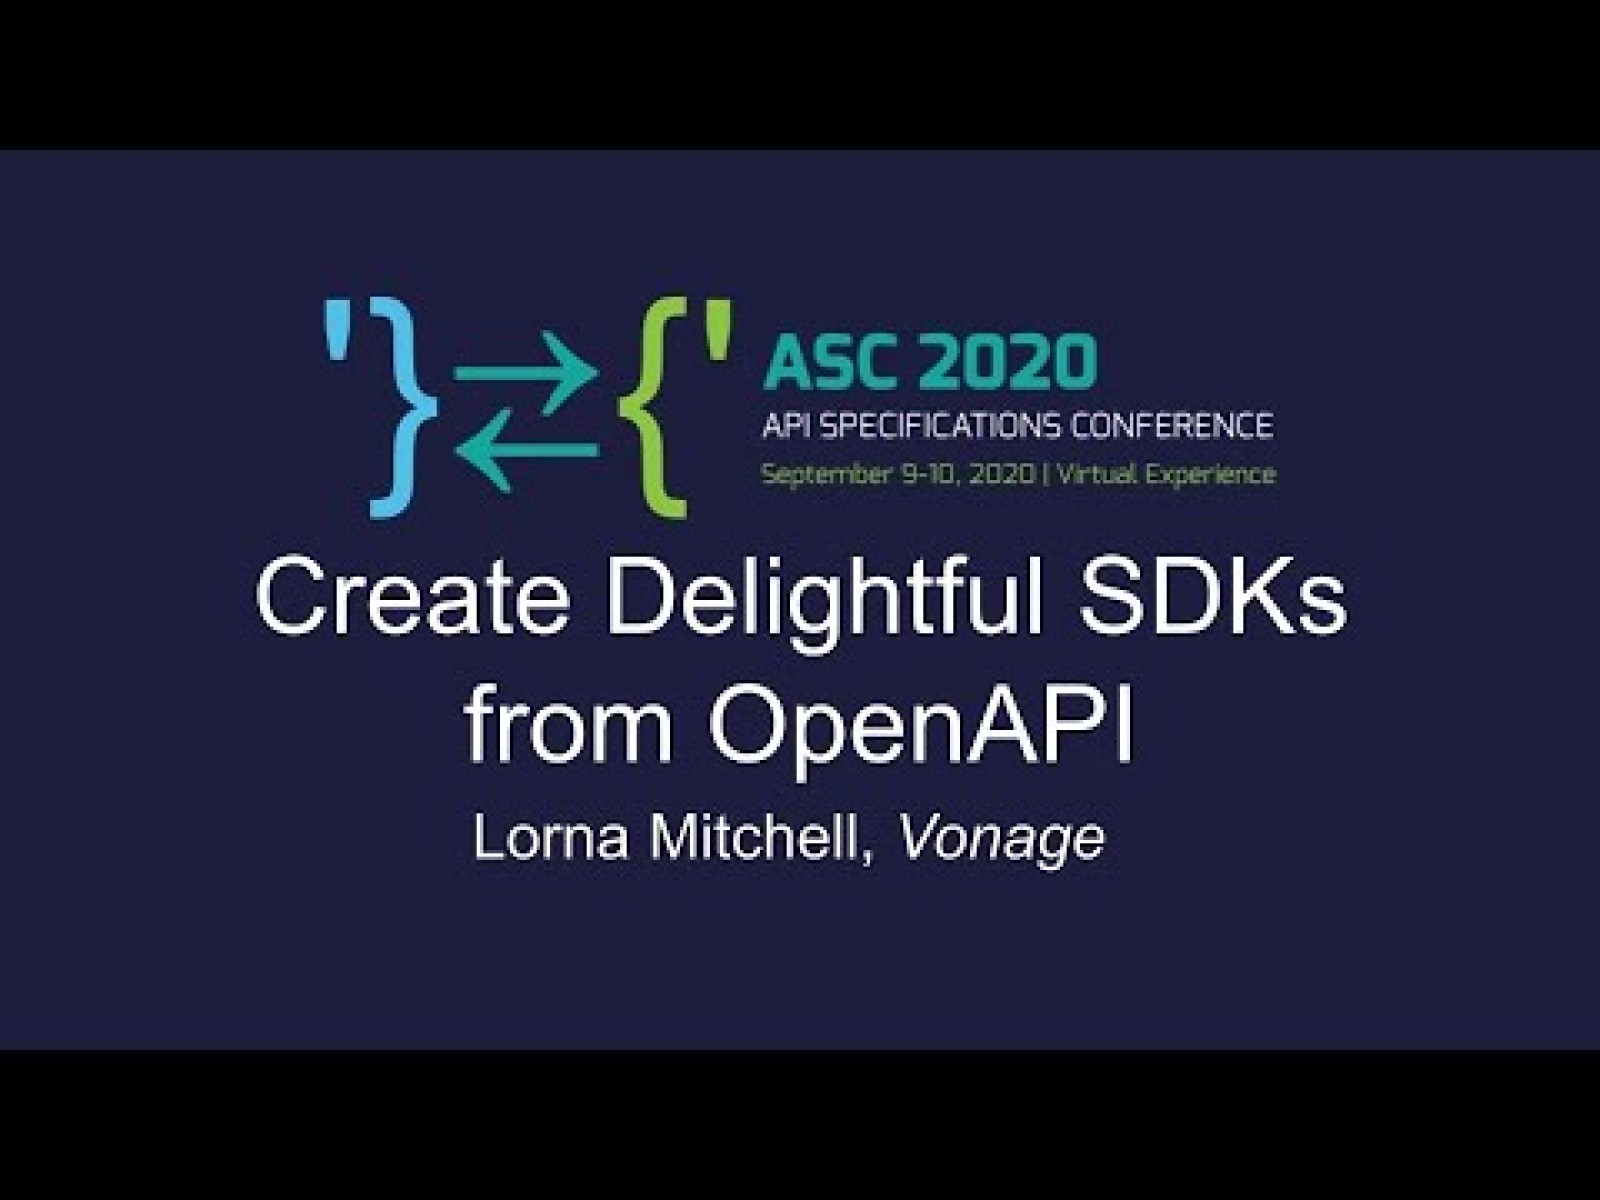 Create Delightful SDKs with OpenAPI